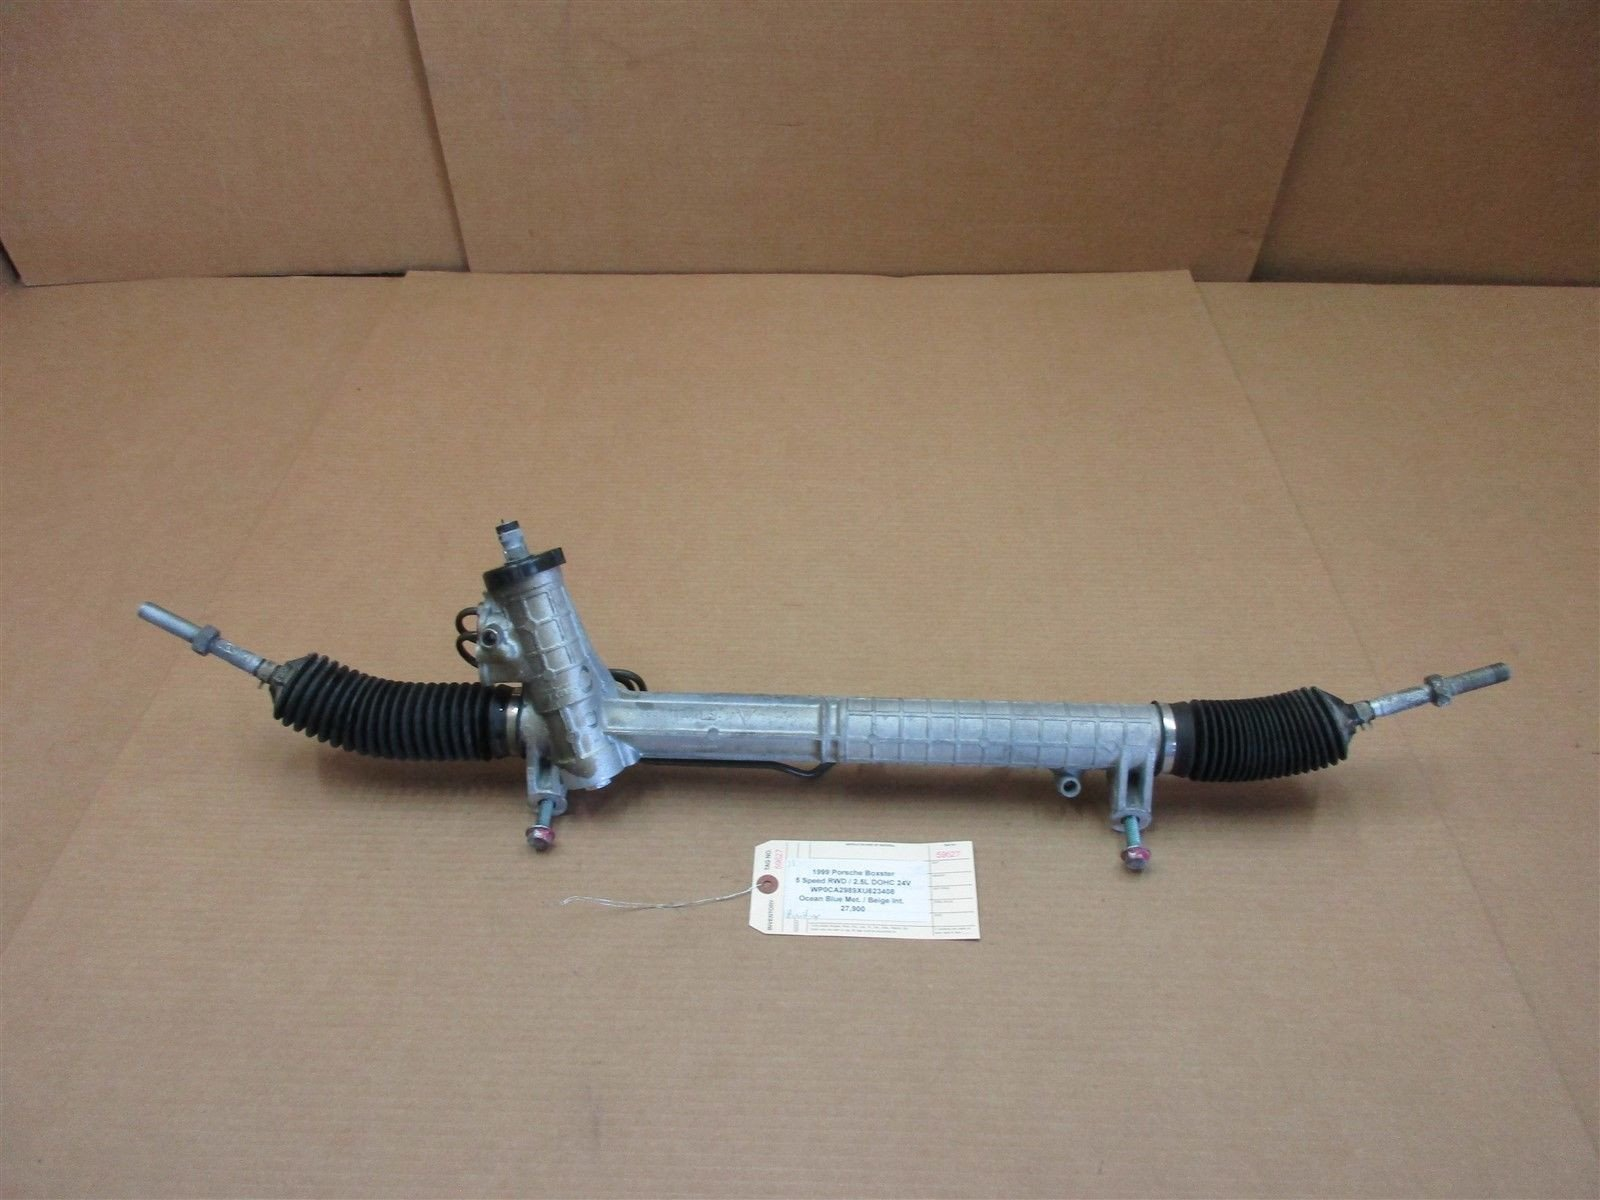 99 Boxster RWD Porsche 986 PINION POWER STEERING RACK 99634701105 27,900